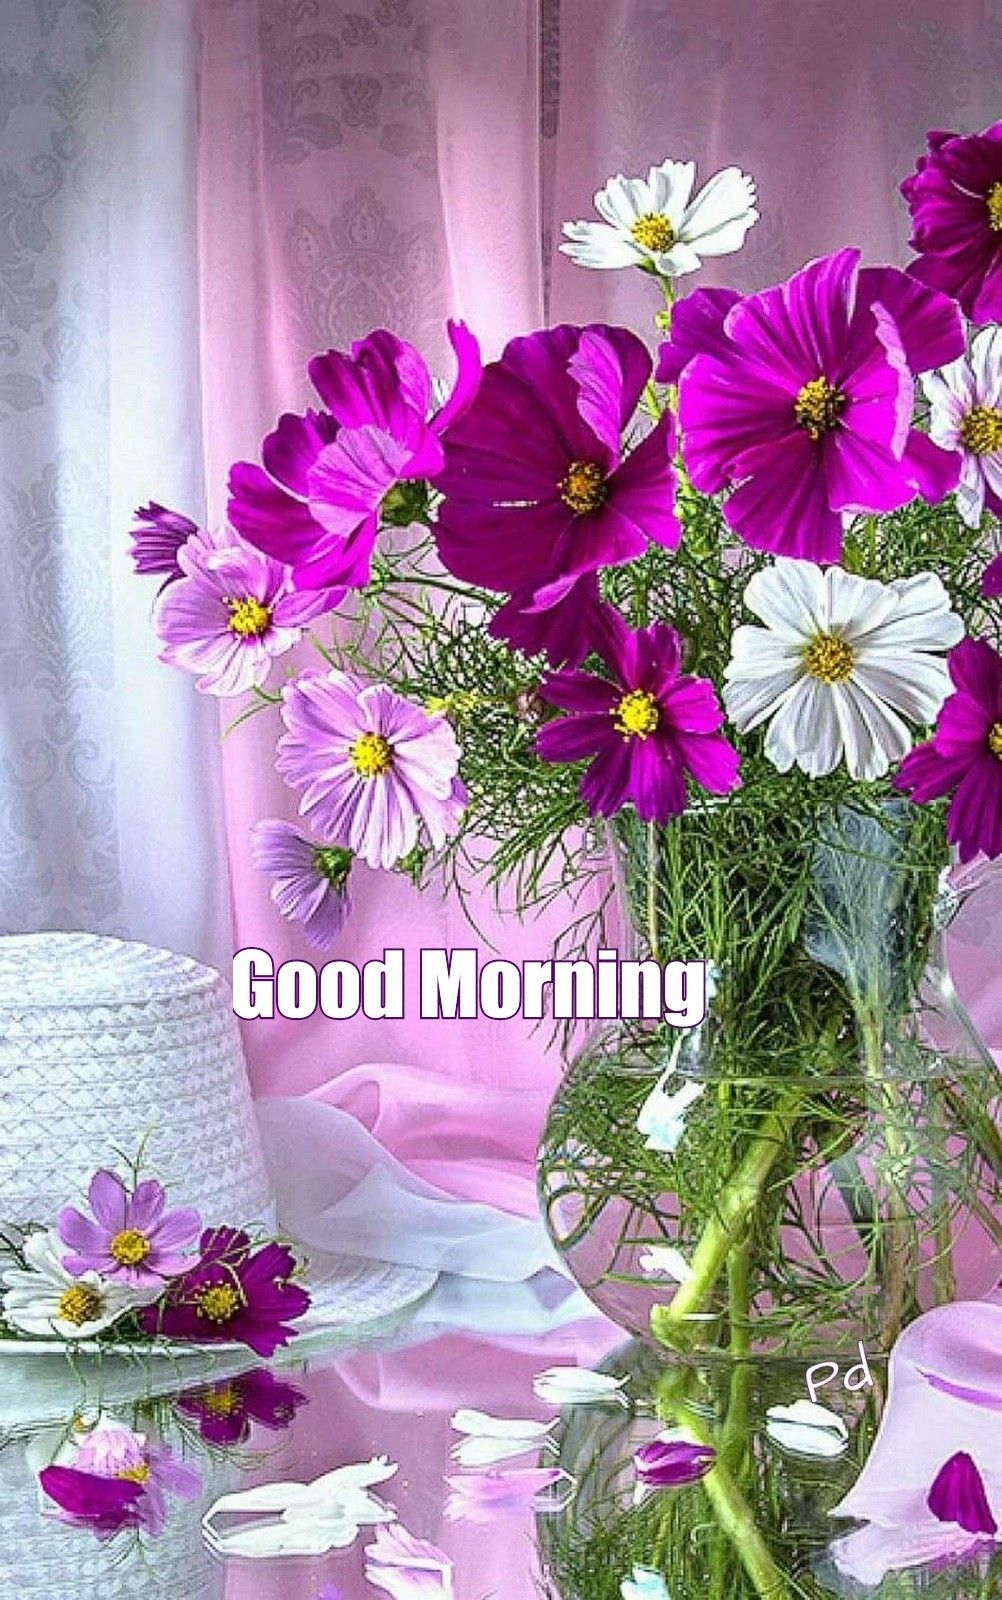 Good Morning Greetings Good Morning Flowers Cosmos Flowers Flower Wallpaper